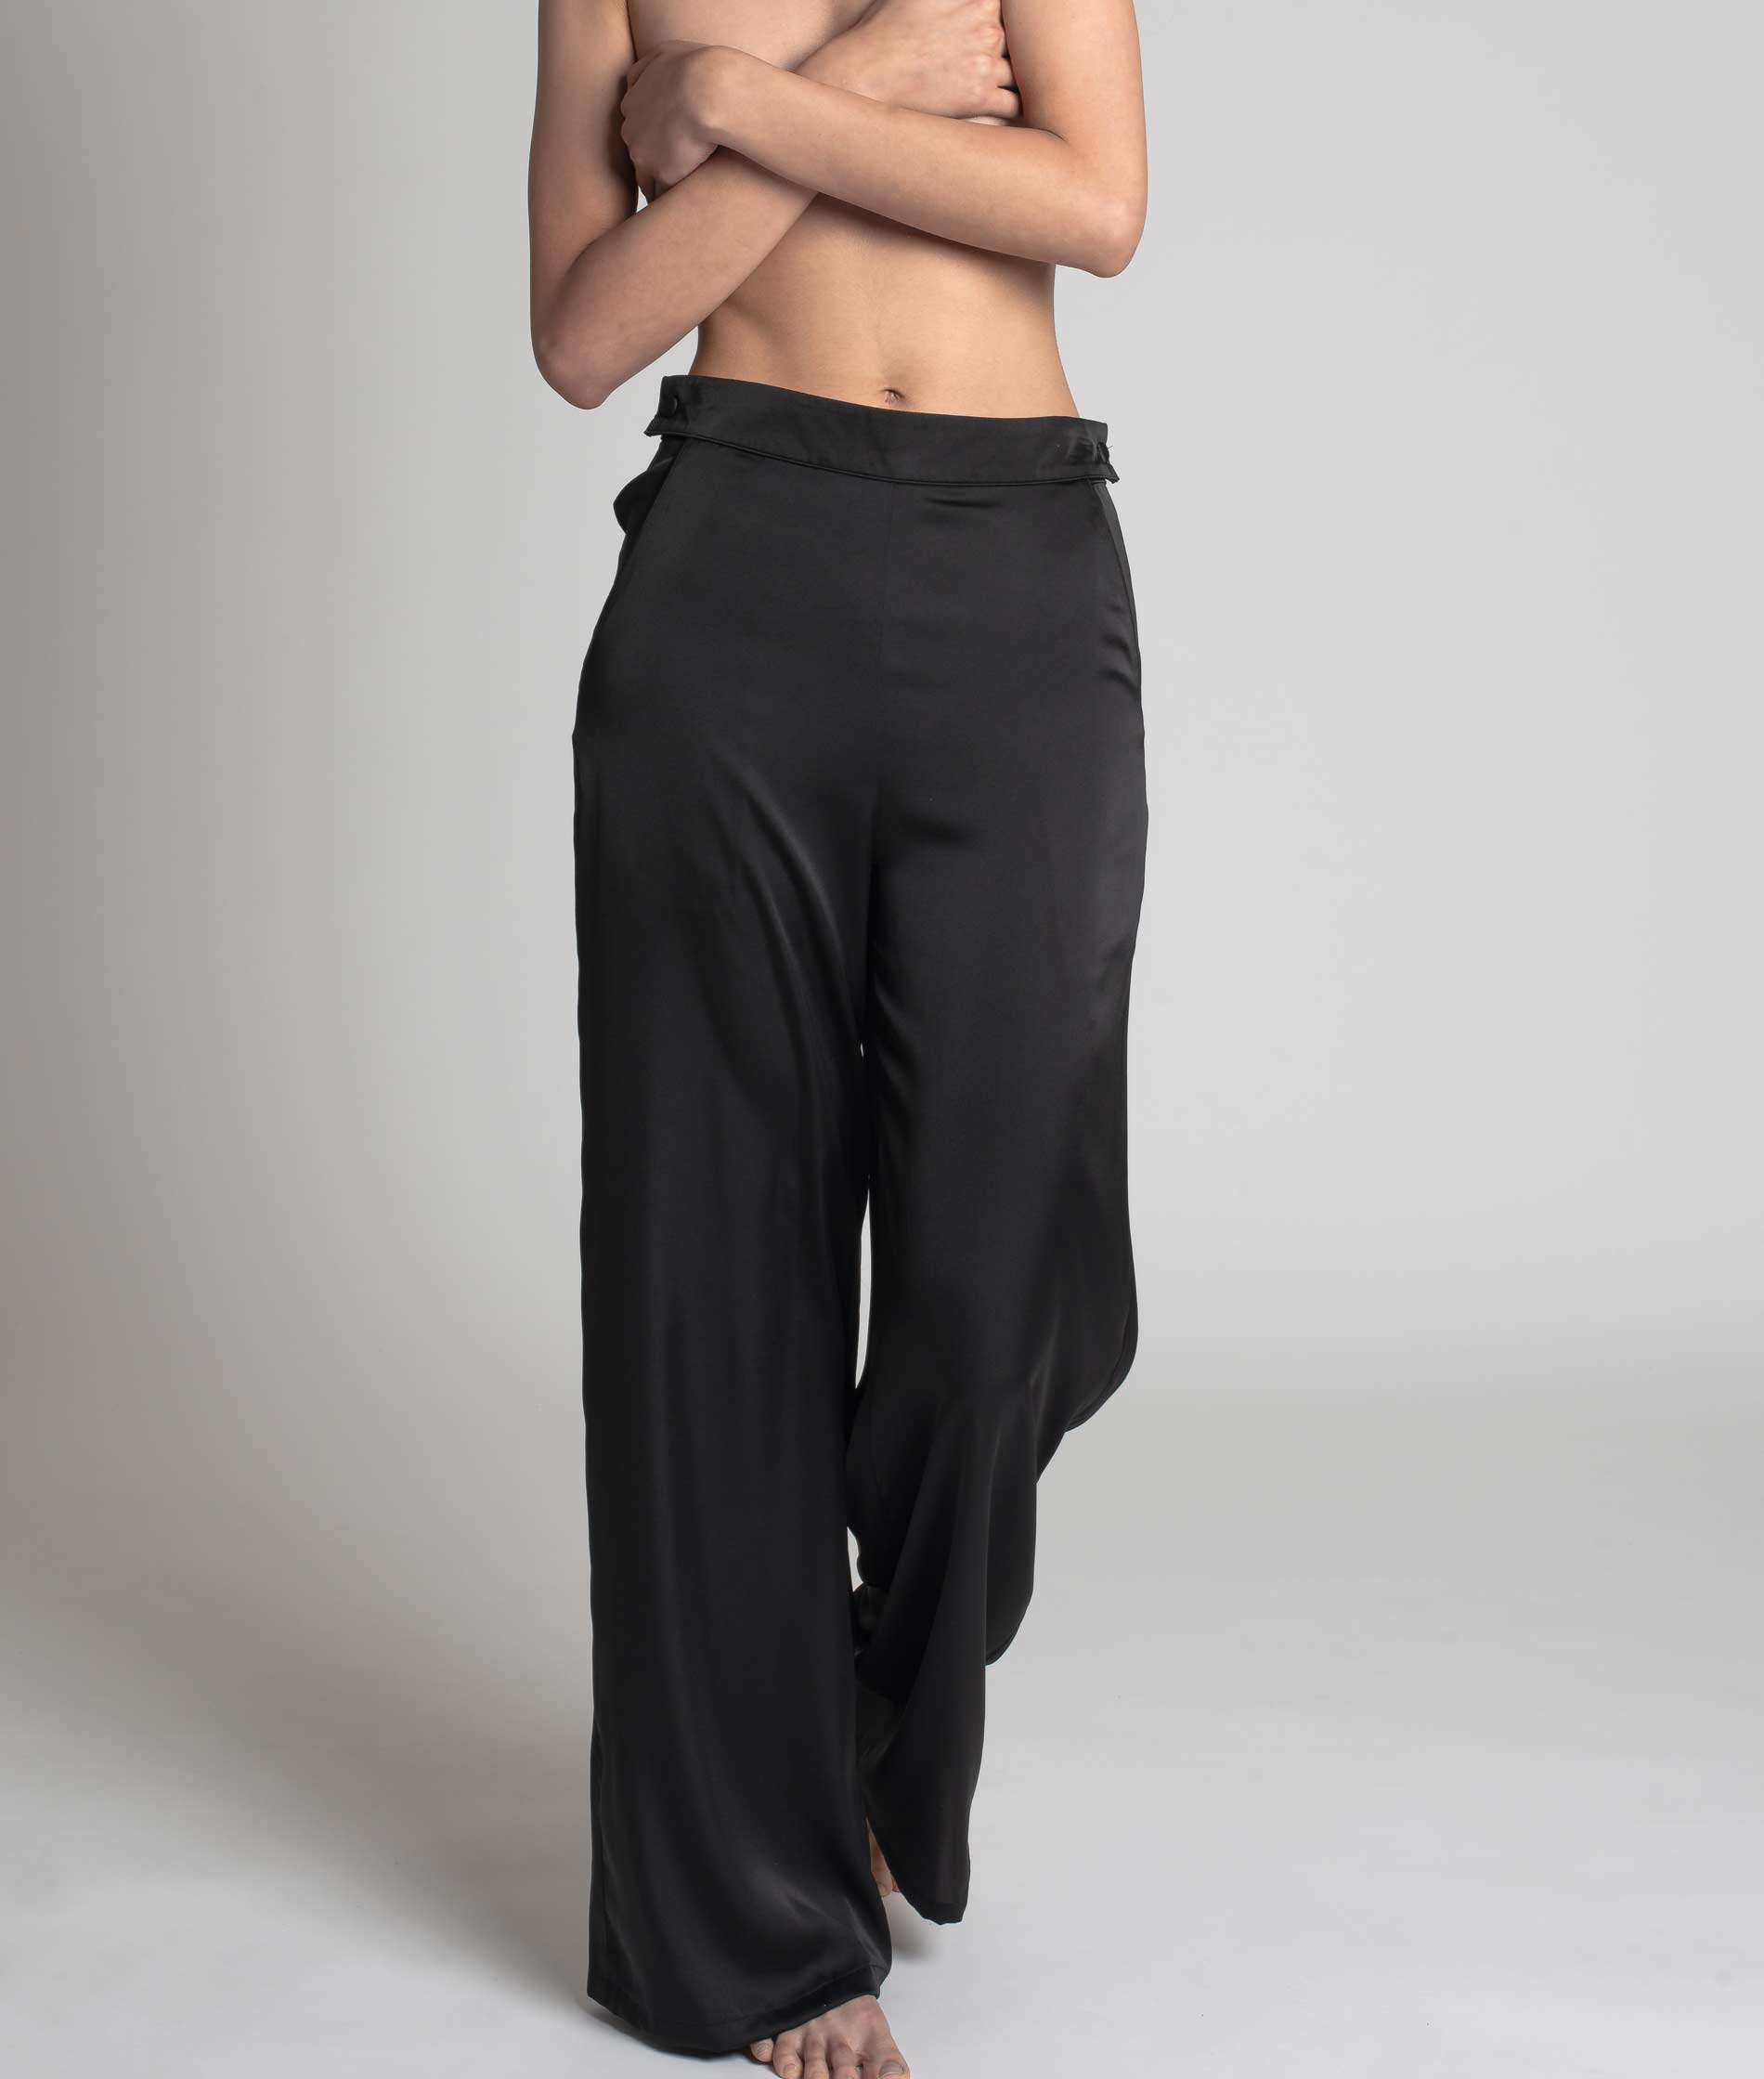 RAVEN + ROSE Hendrix Wide Leg Pants Black Piping